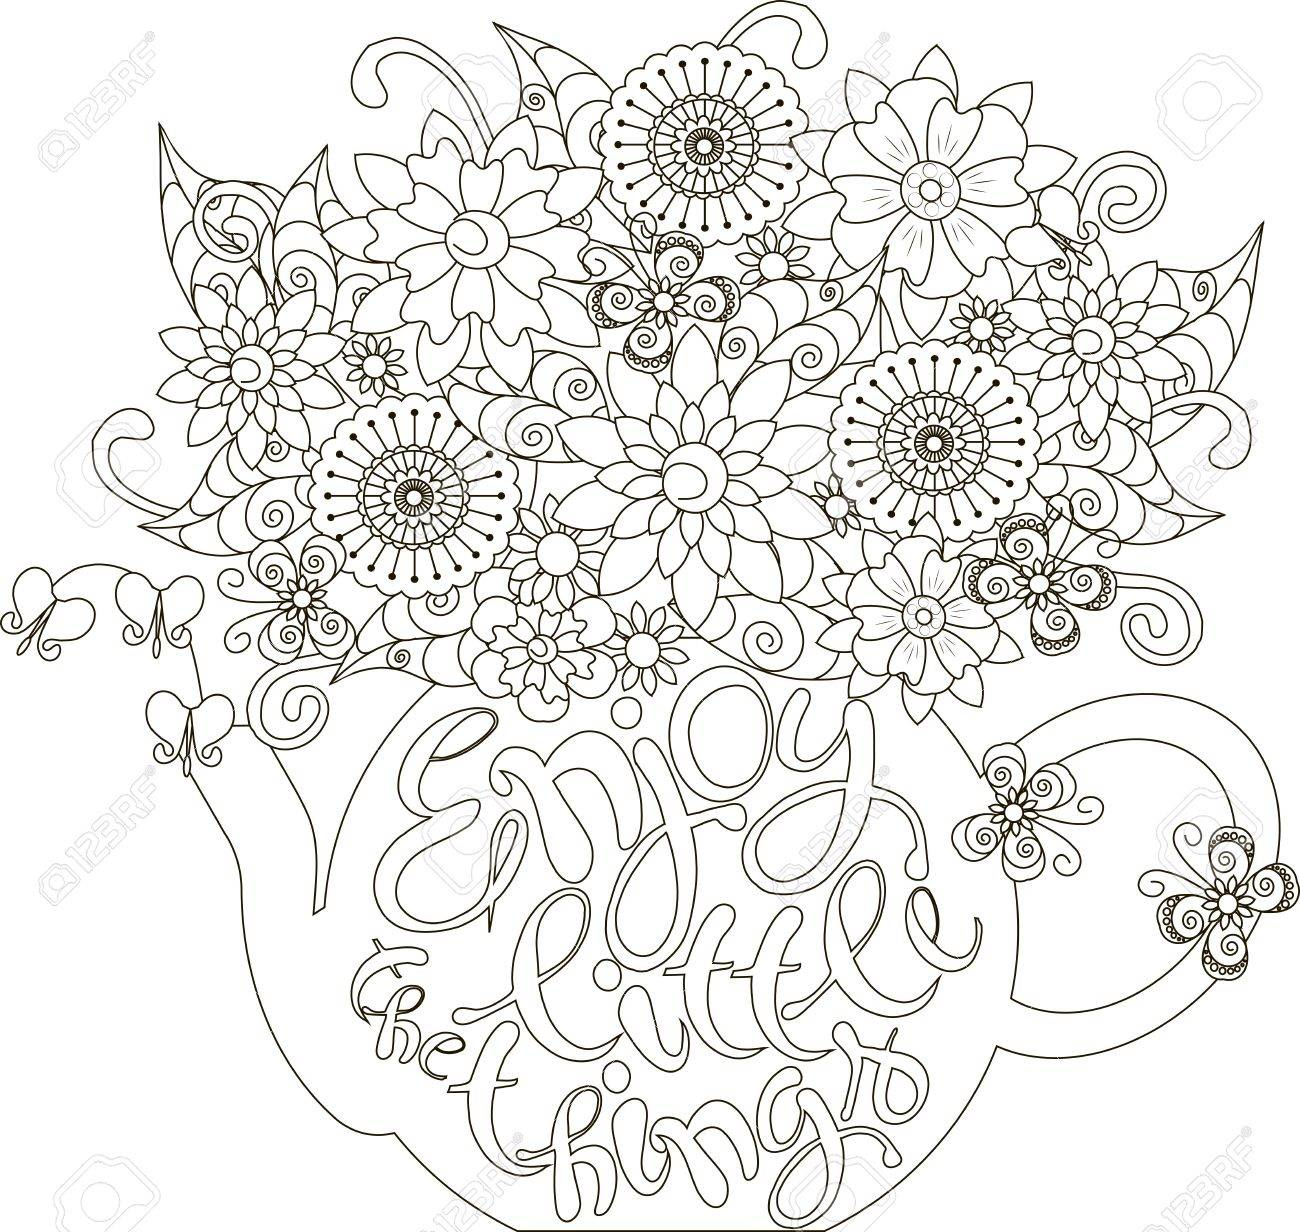 Lettering Enjoy Little Things Bouquet In A Teapot Coloring